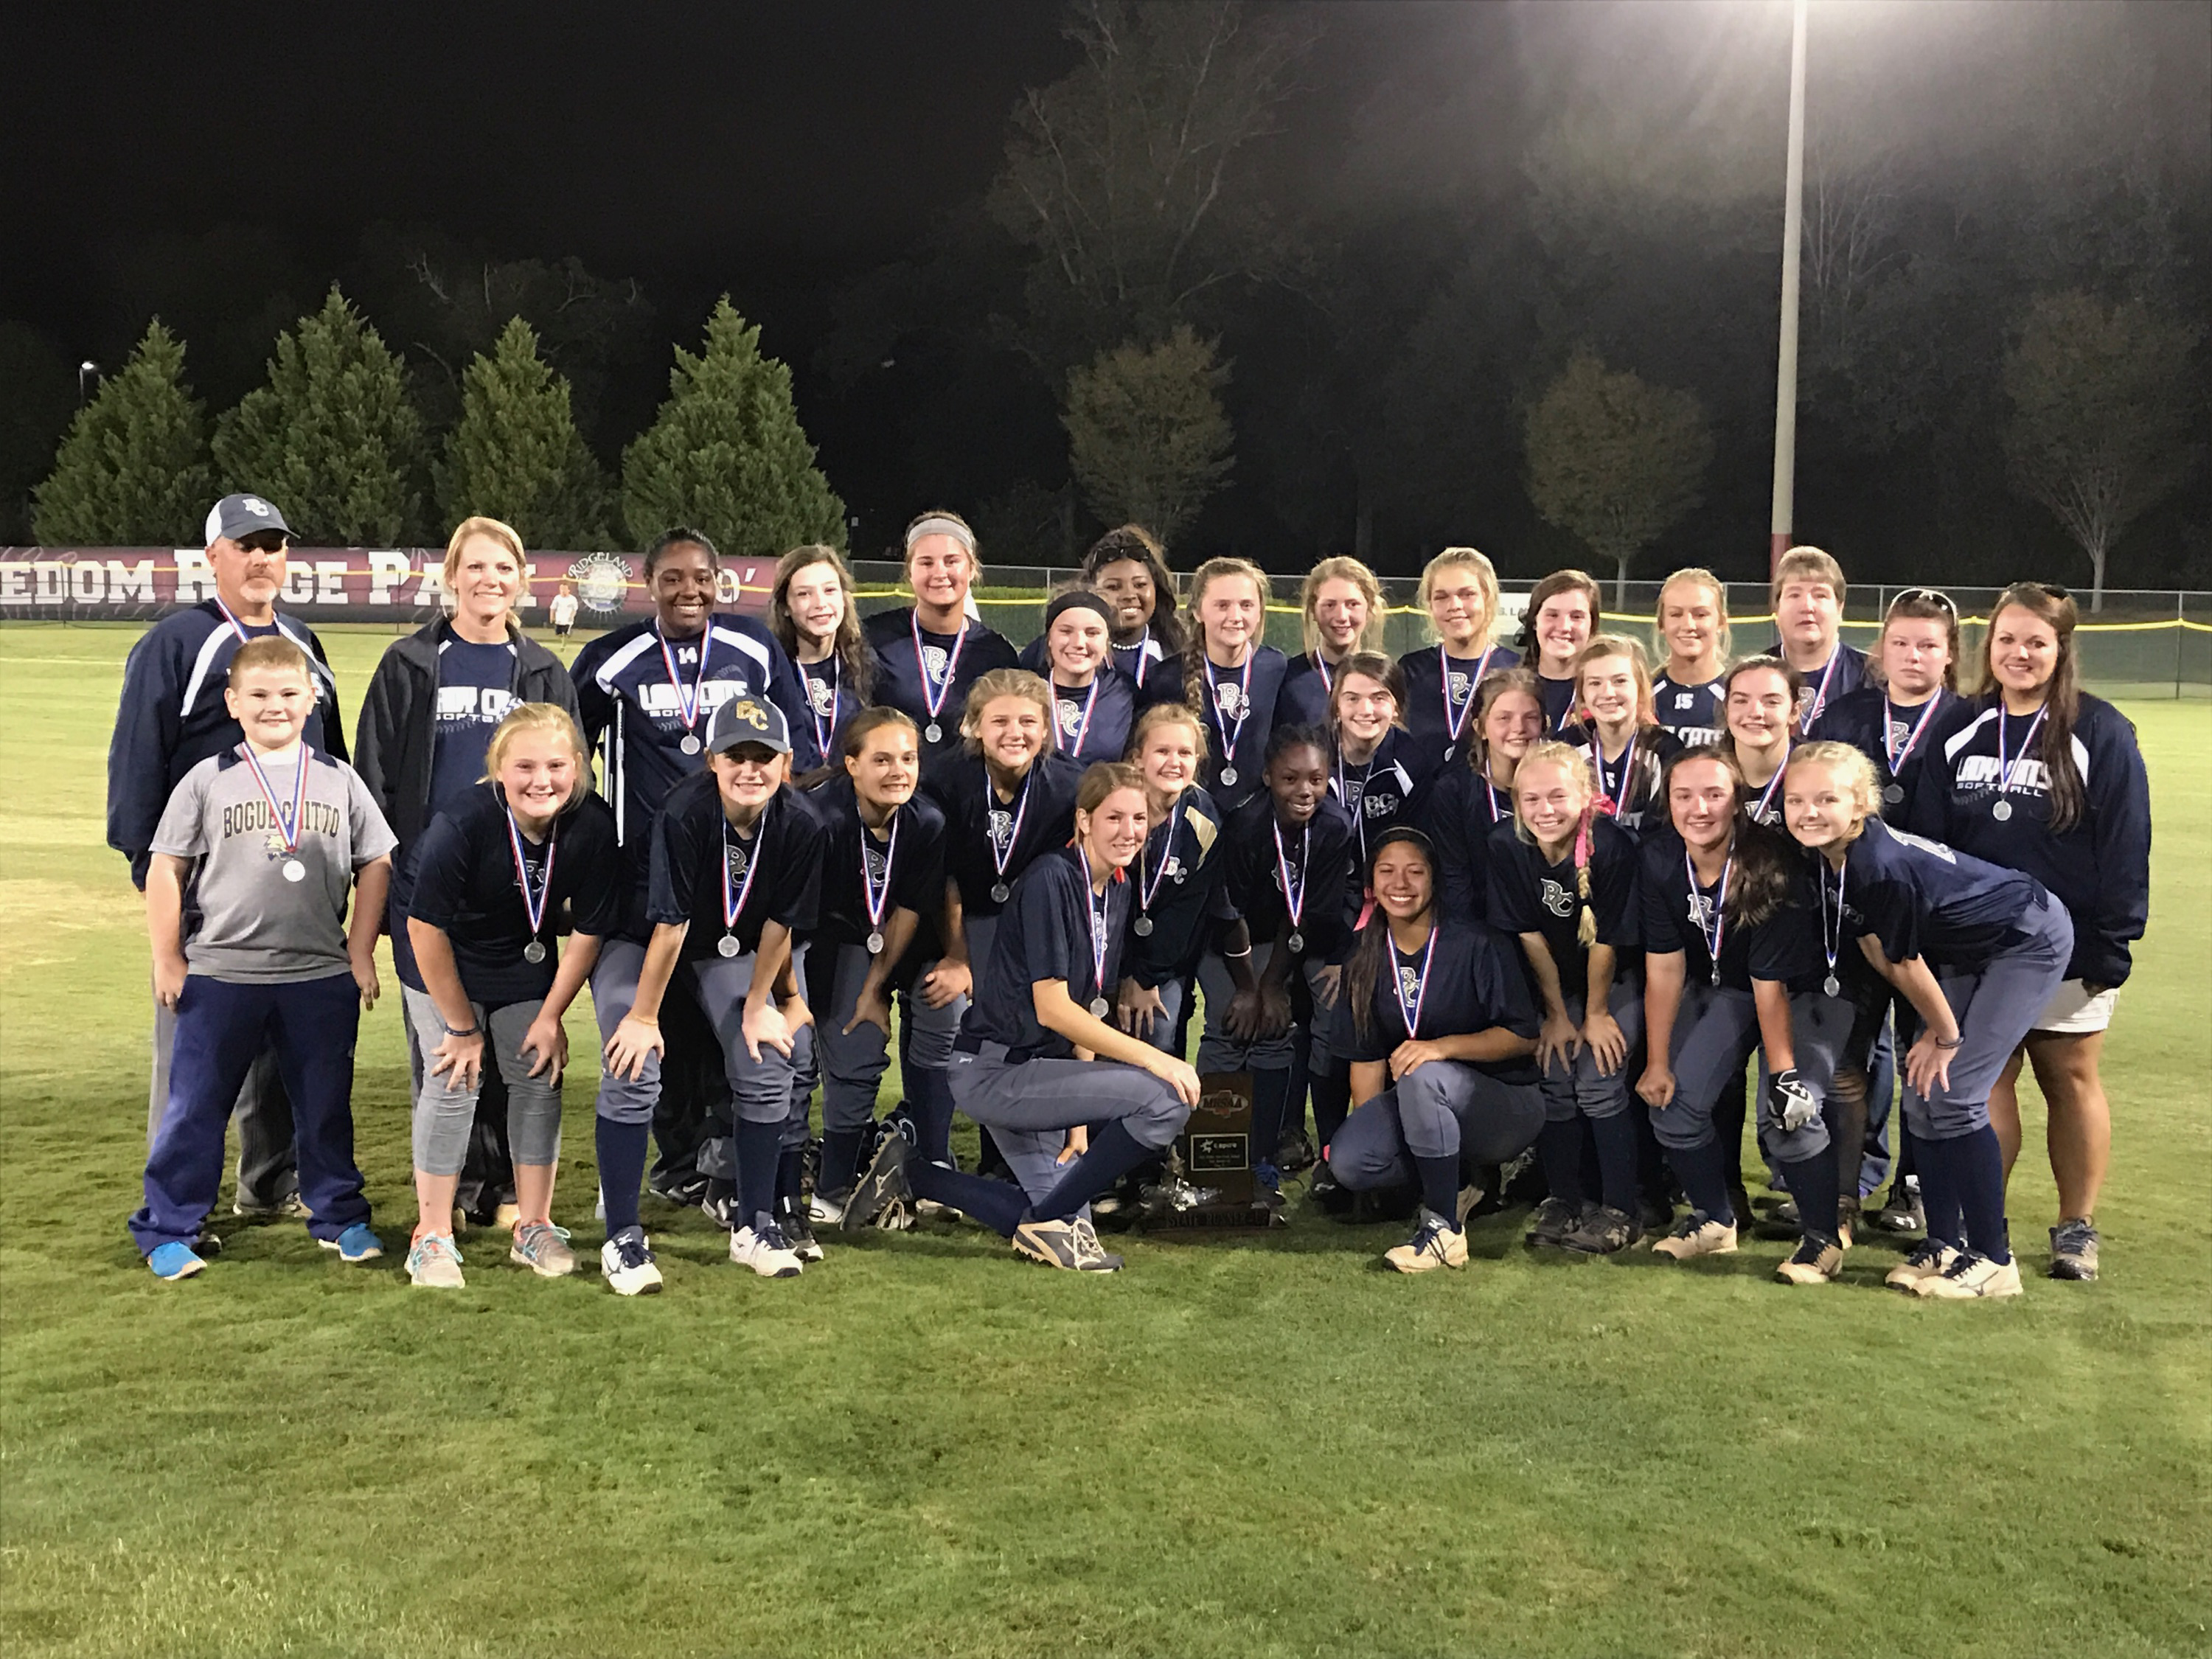 Photo by Stacey Leake\The Bogue Chitto Lady Bobcats lost to Hamilton Saturday in the Class 1A slow-pitch softball state championship. The Bobcats won Game 2 in a three-game series, beating Hamilton 19-15, but lost Games 1 (18-11) and Games 3 (15-2).